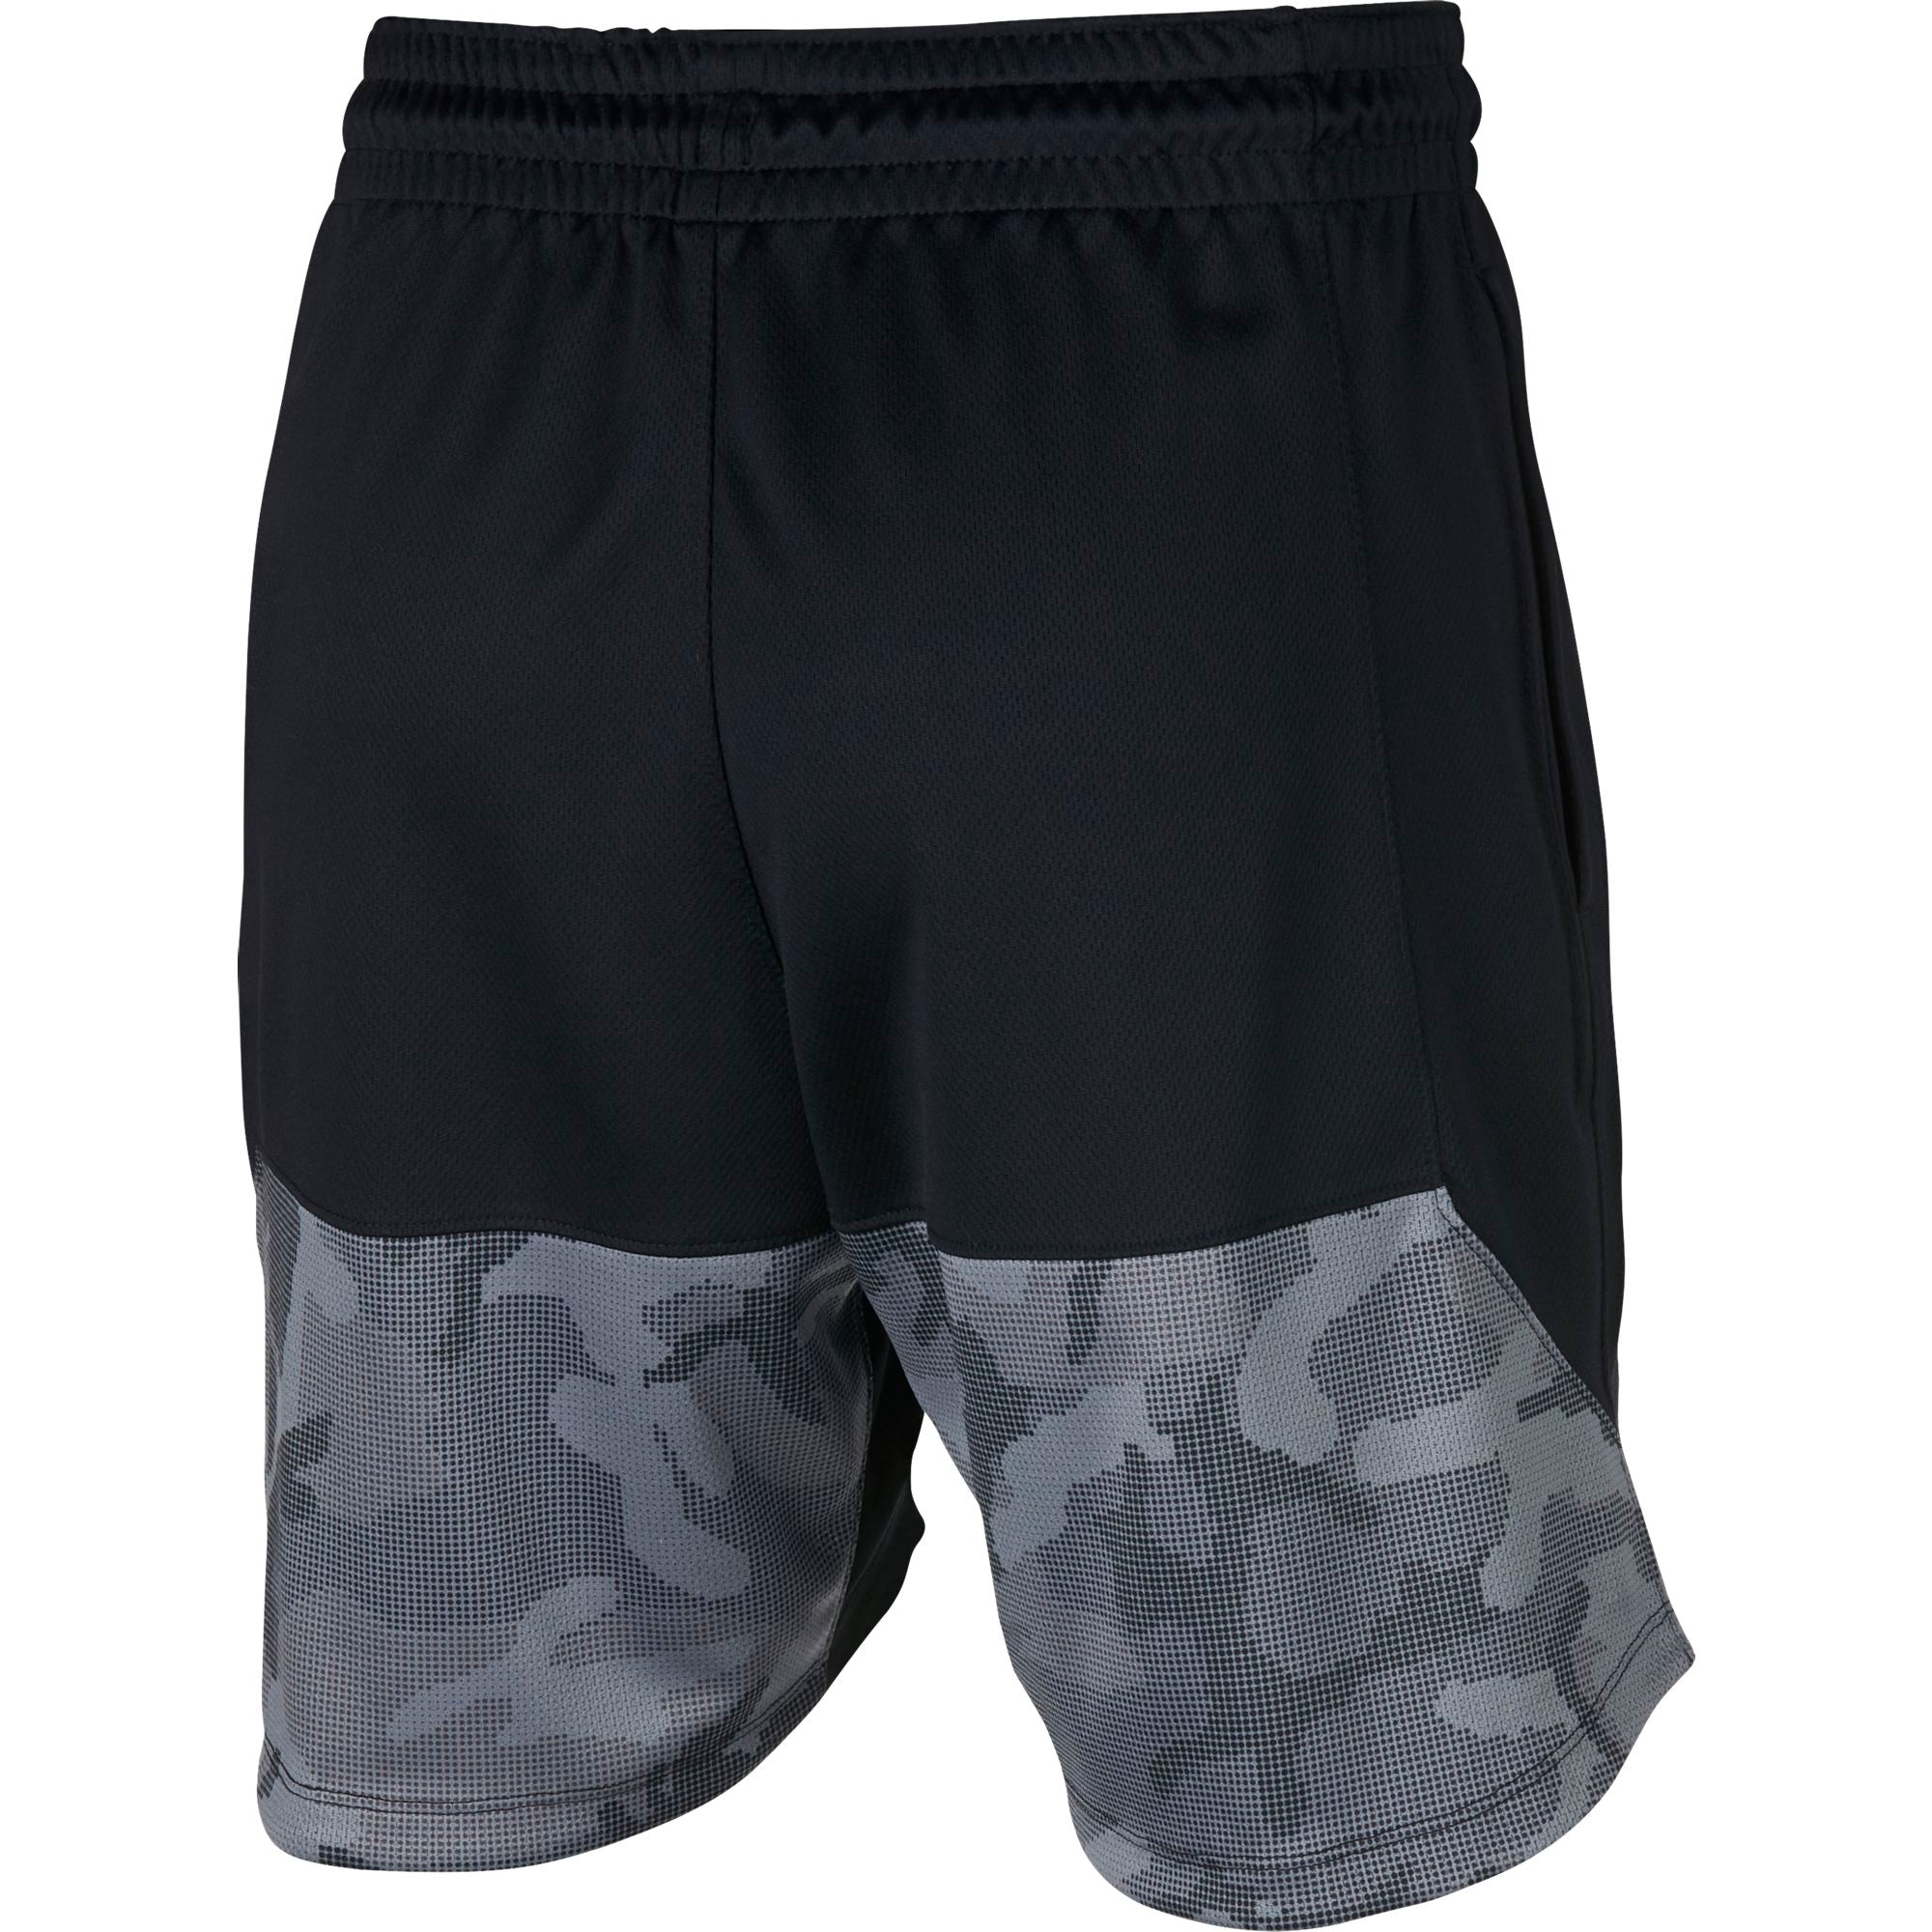 Nike Womens Basketball Elite Shorts - Black/Cool Grey